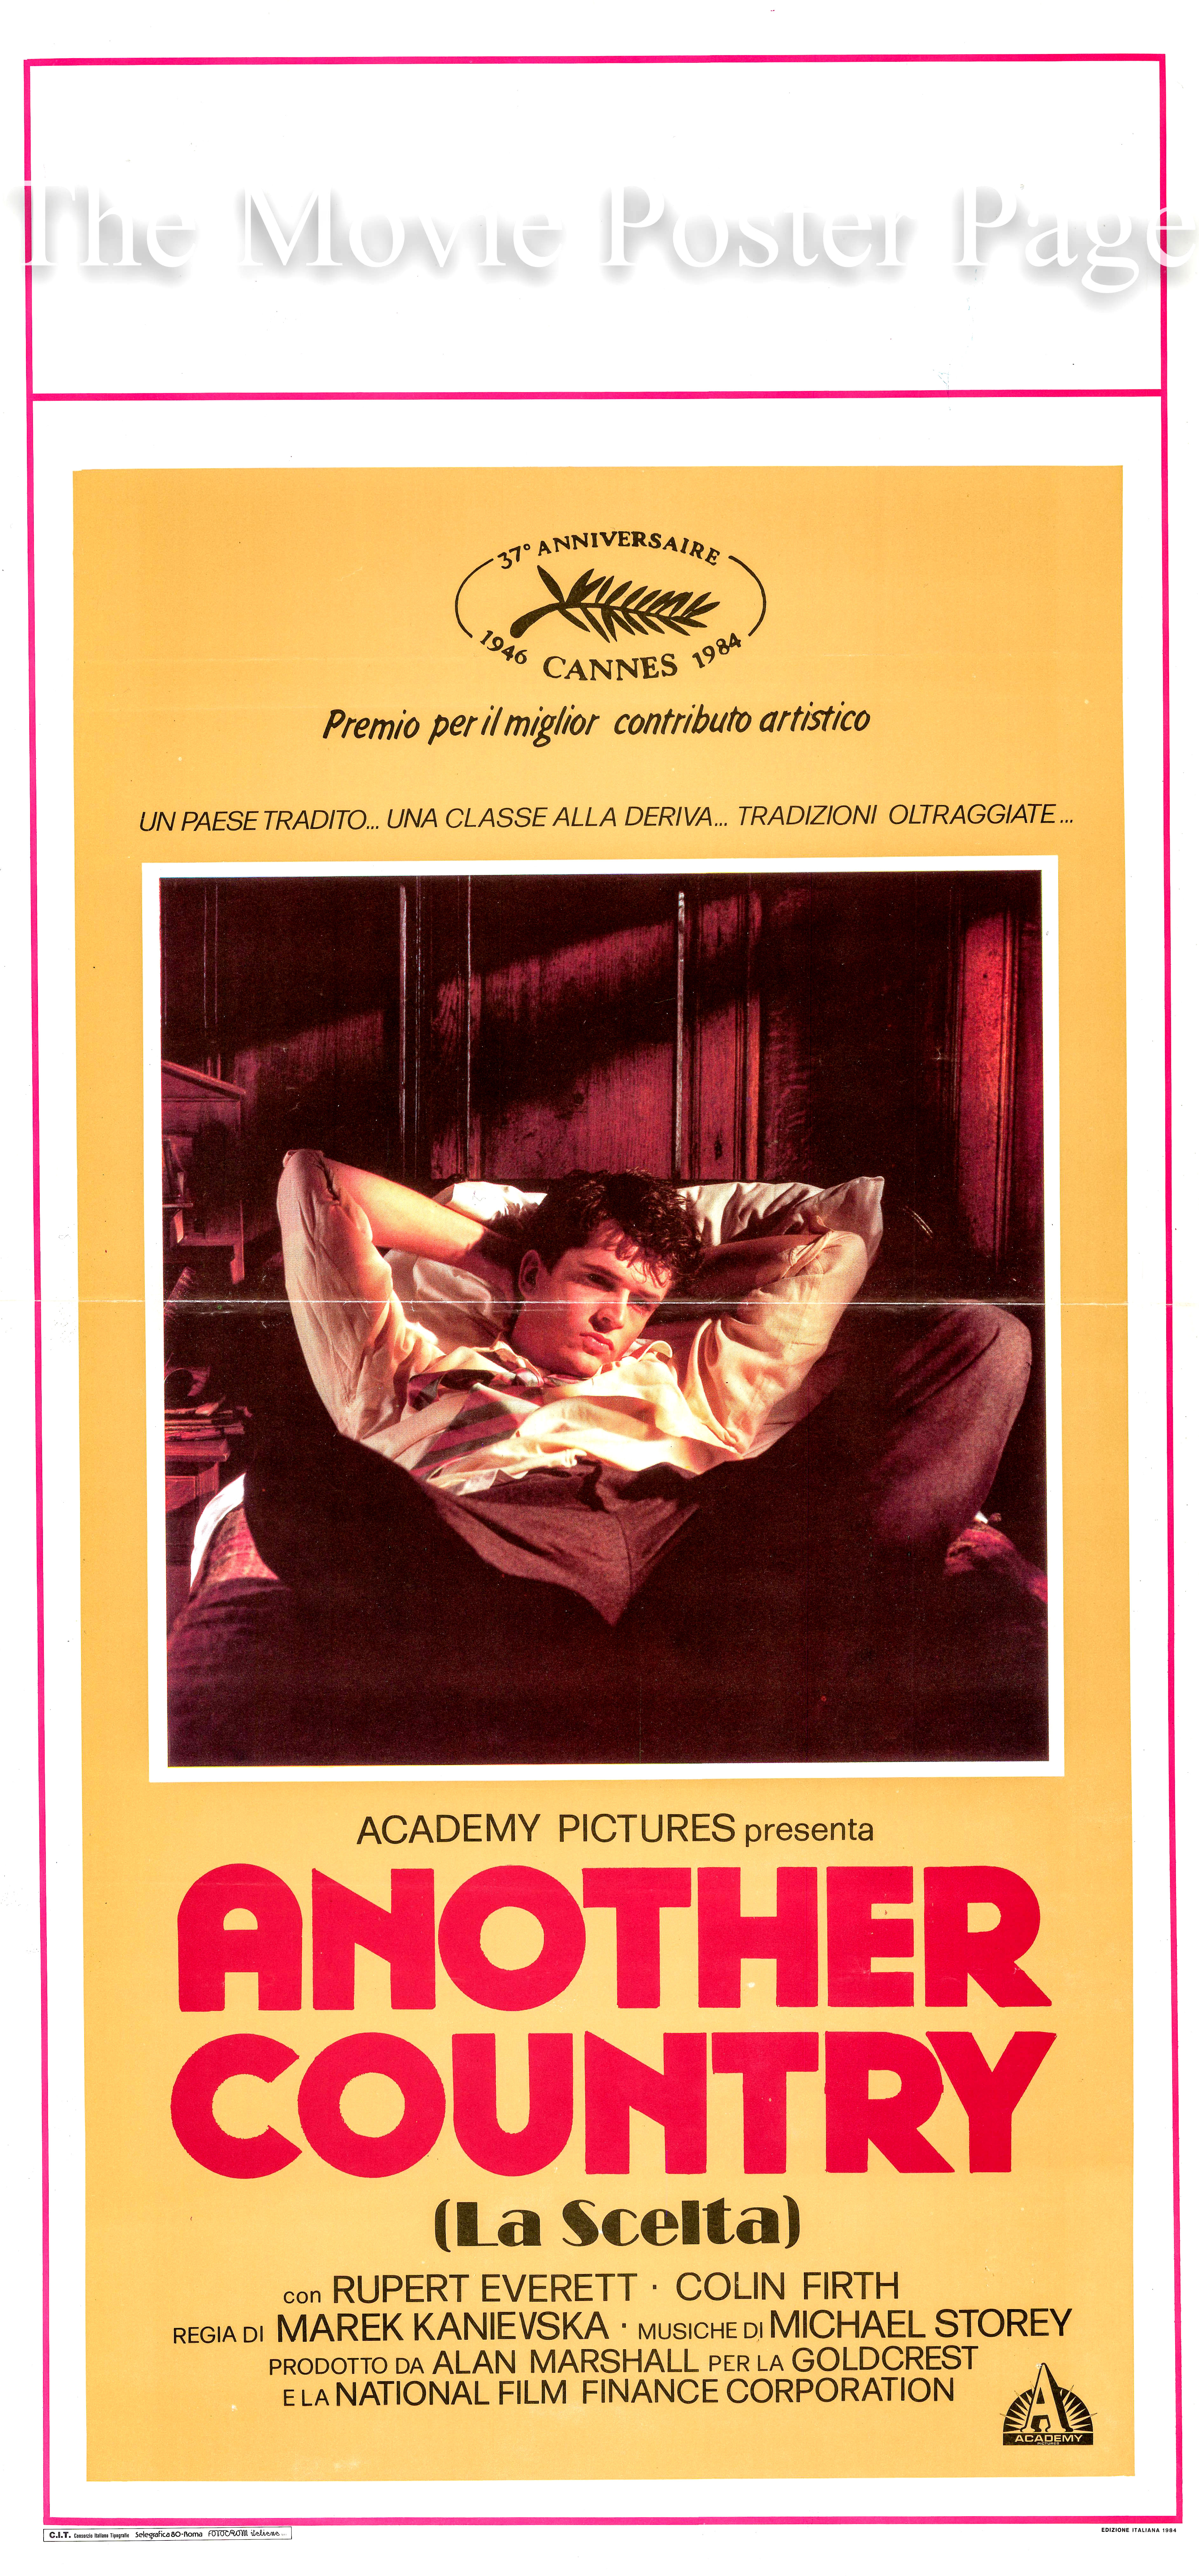 Pictured is an Italian locandina promotional poster for the 1984 Marek Kanievska film <i>Another Country</i> based on play and screenplay by Julian Mitchell and starring Rupert Everett as Guy Bennett.